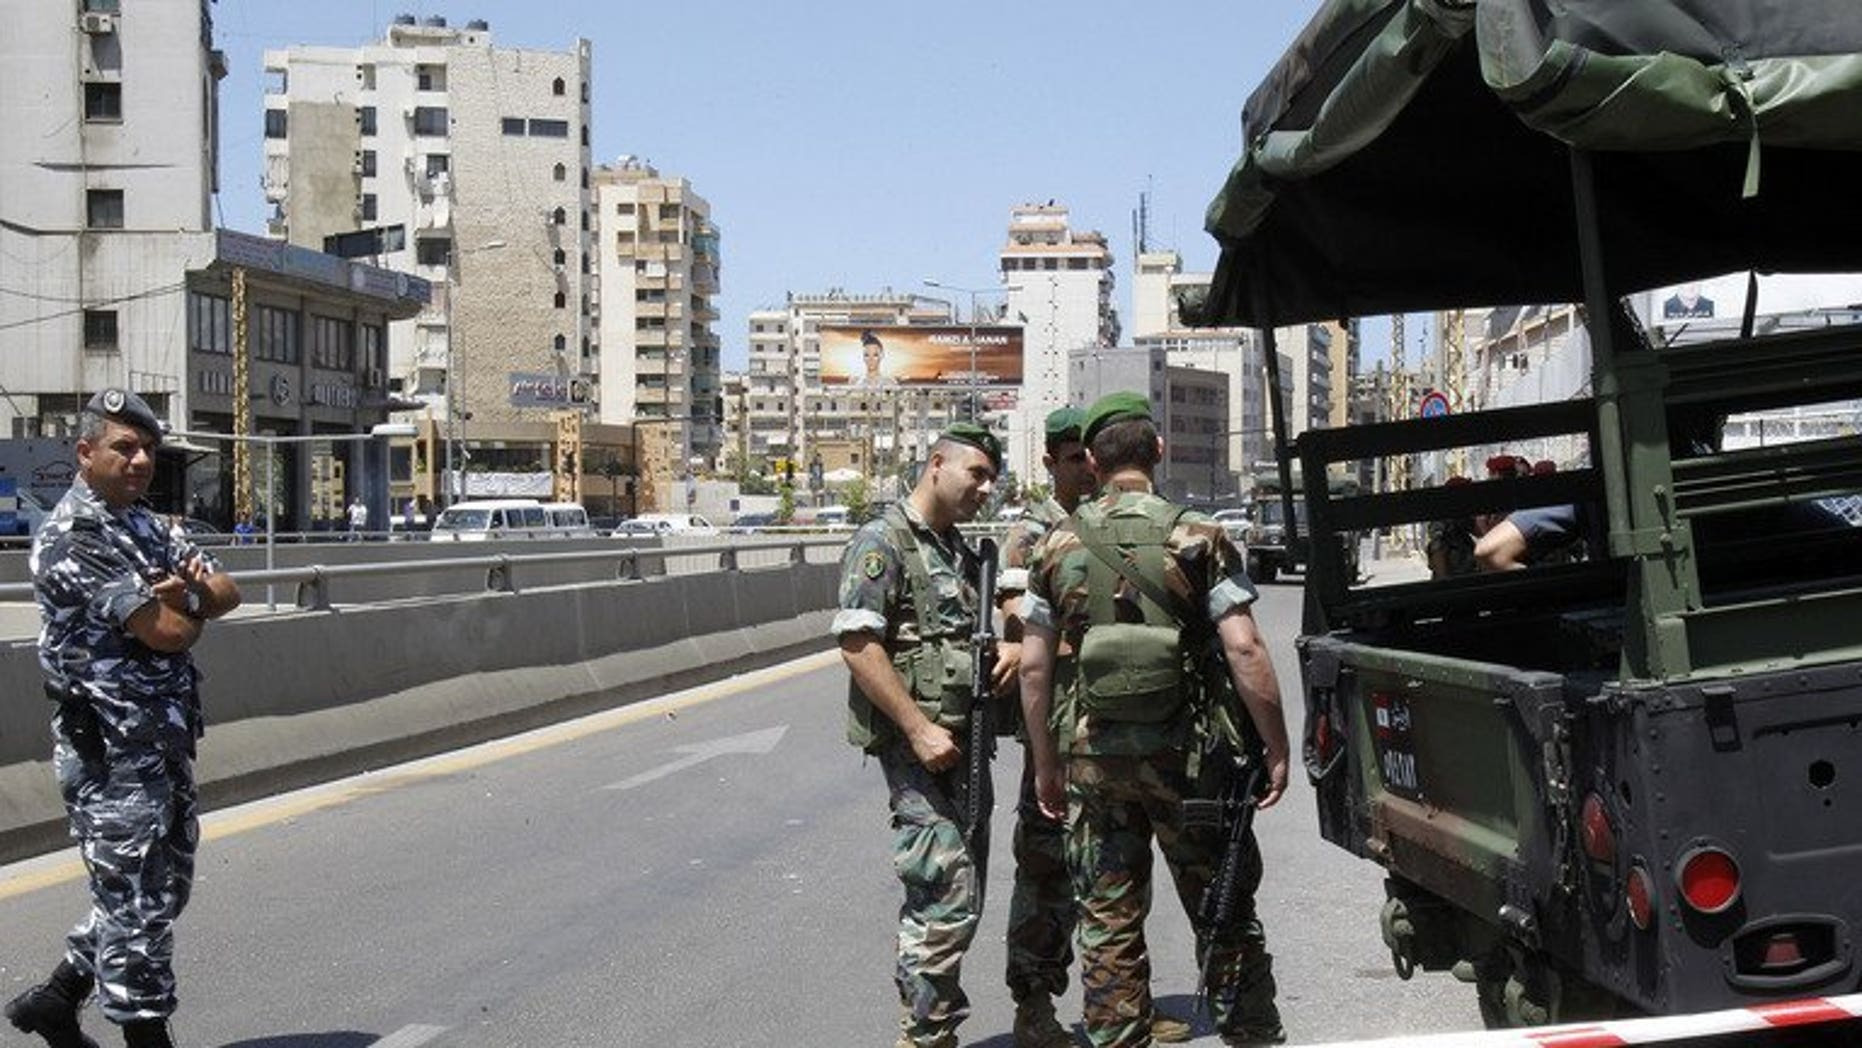 Lebanese security forces stand guard in Beirut on May 26, 2013. A car bomb on Tuesday rocked Beirut's Hezbollah stronghold in the southern suburbs, which is populated mainly by Shiite Muslims.